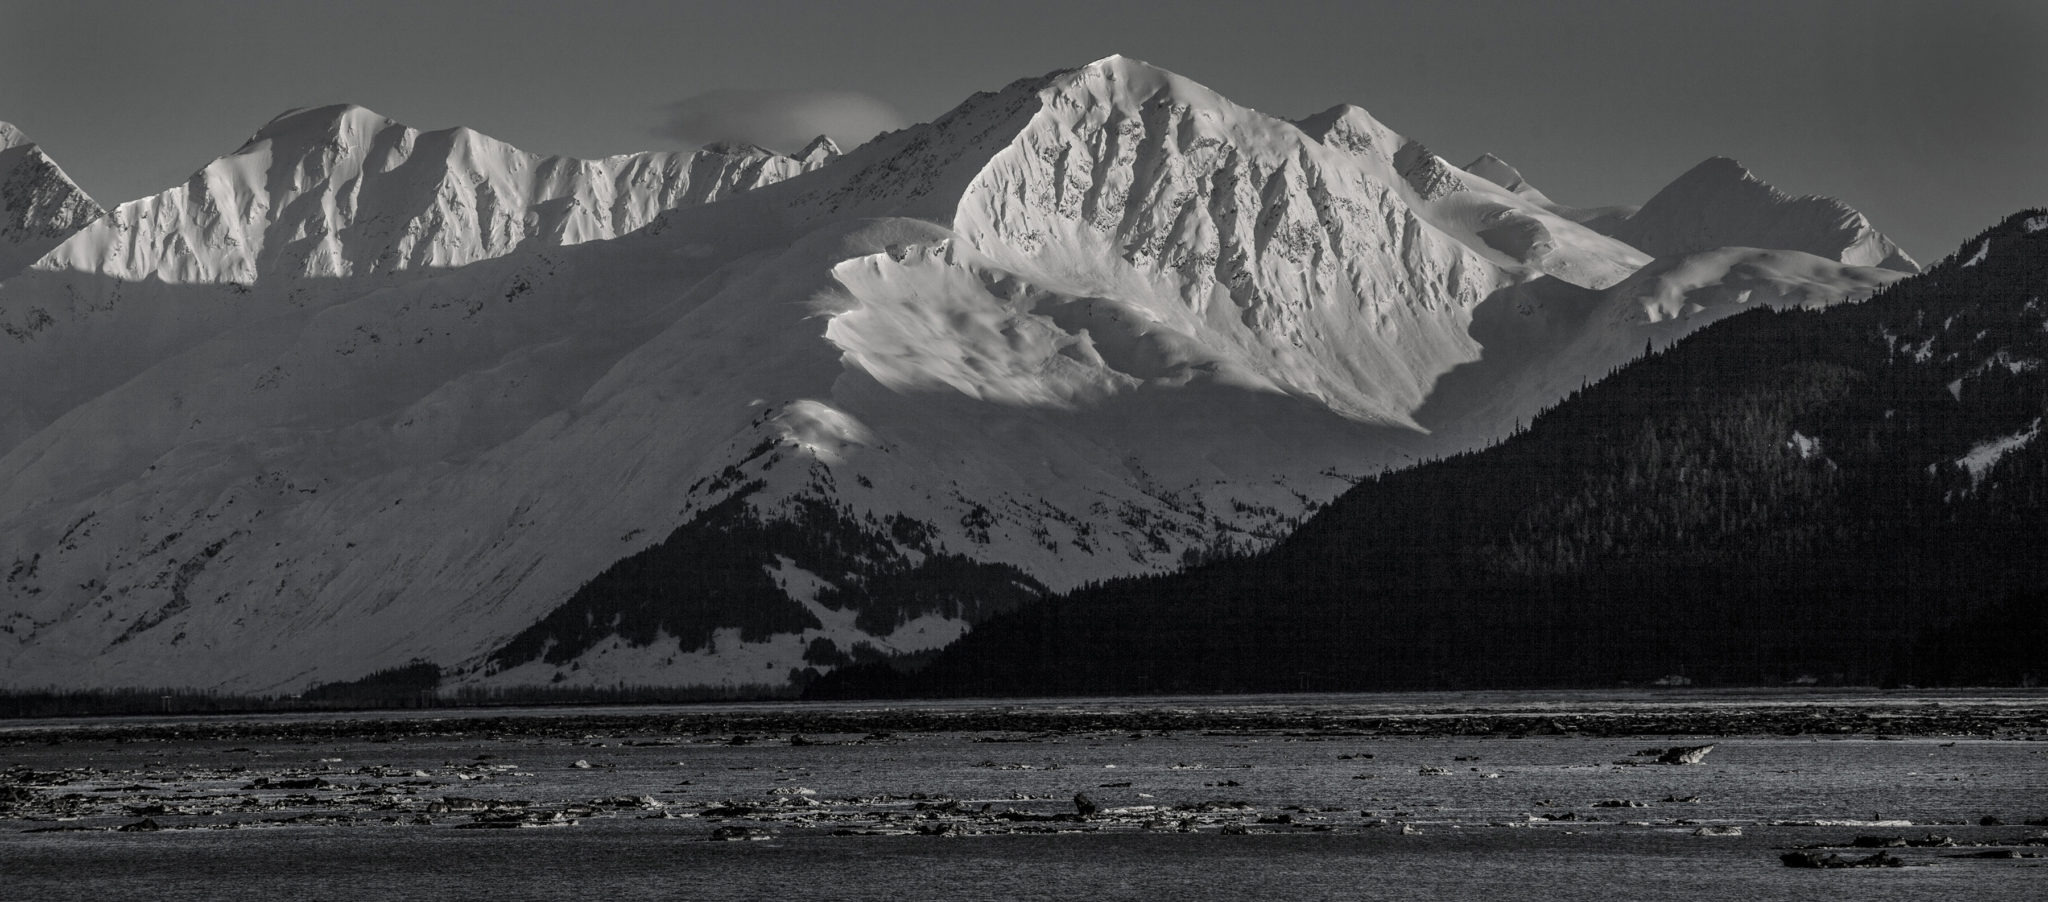 The mountains and peaks around the Turnagain Arm - Alaska photography | Alaskafoto